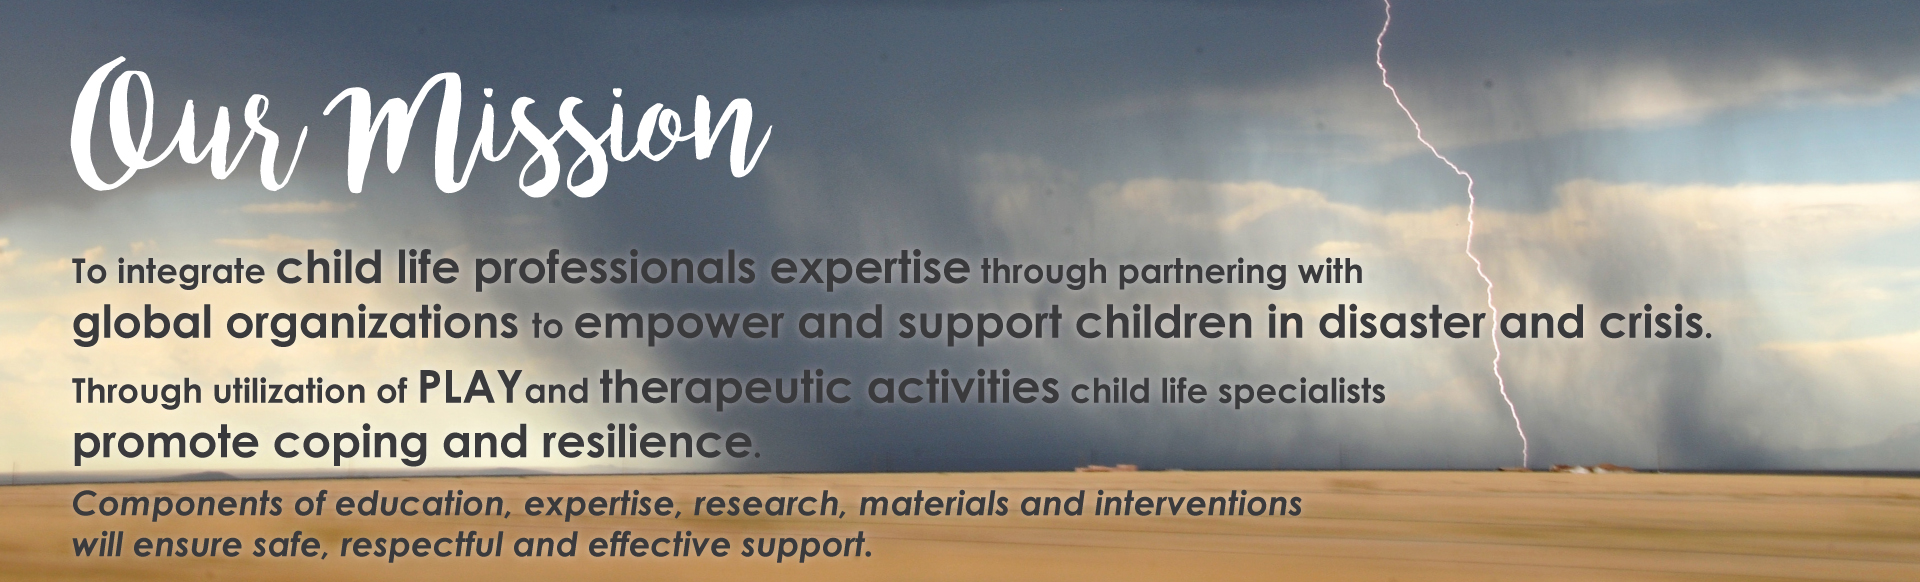 To integrate child life professionals expertise through partnering with global organizations to empower and support children in disaster and crisis. Through utilization of play and therapeutic activities child life specialists promote coping and resilience. Components of education, expertise, research, materials and interventions will ensure safe, respectful and effective support.